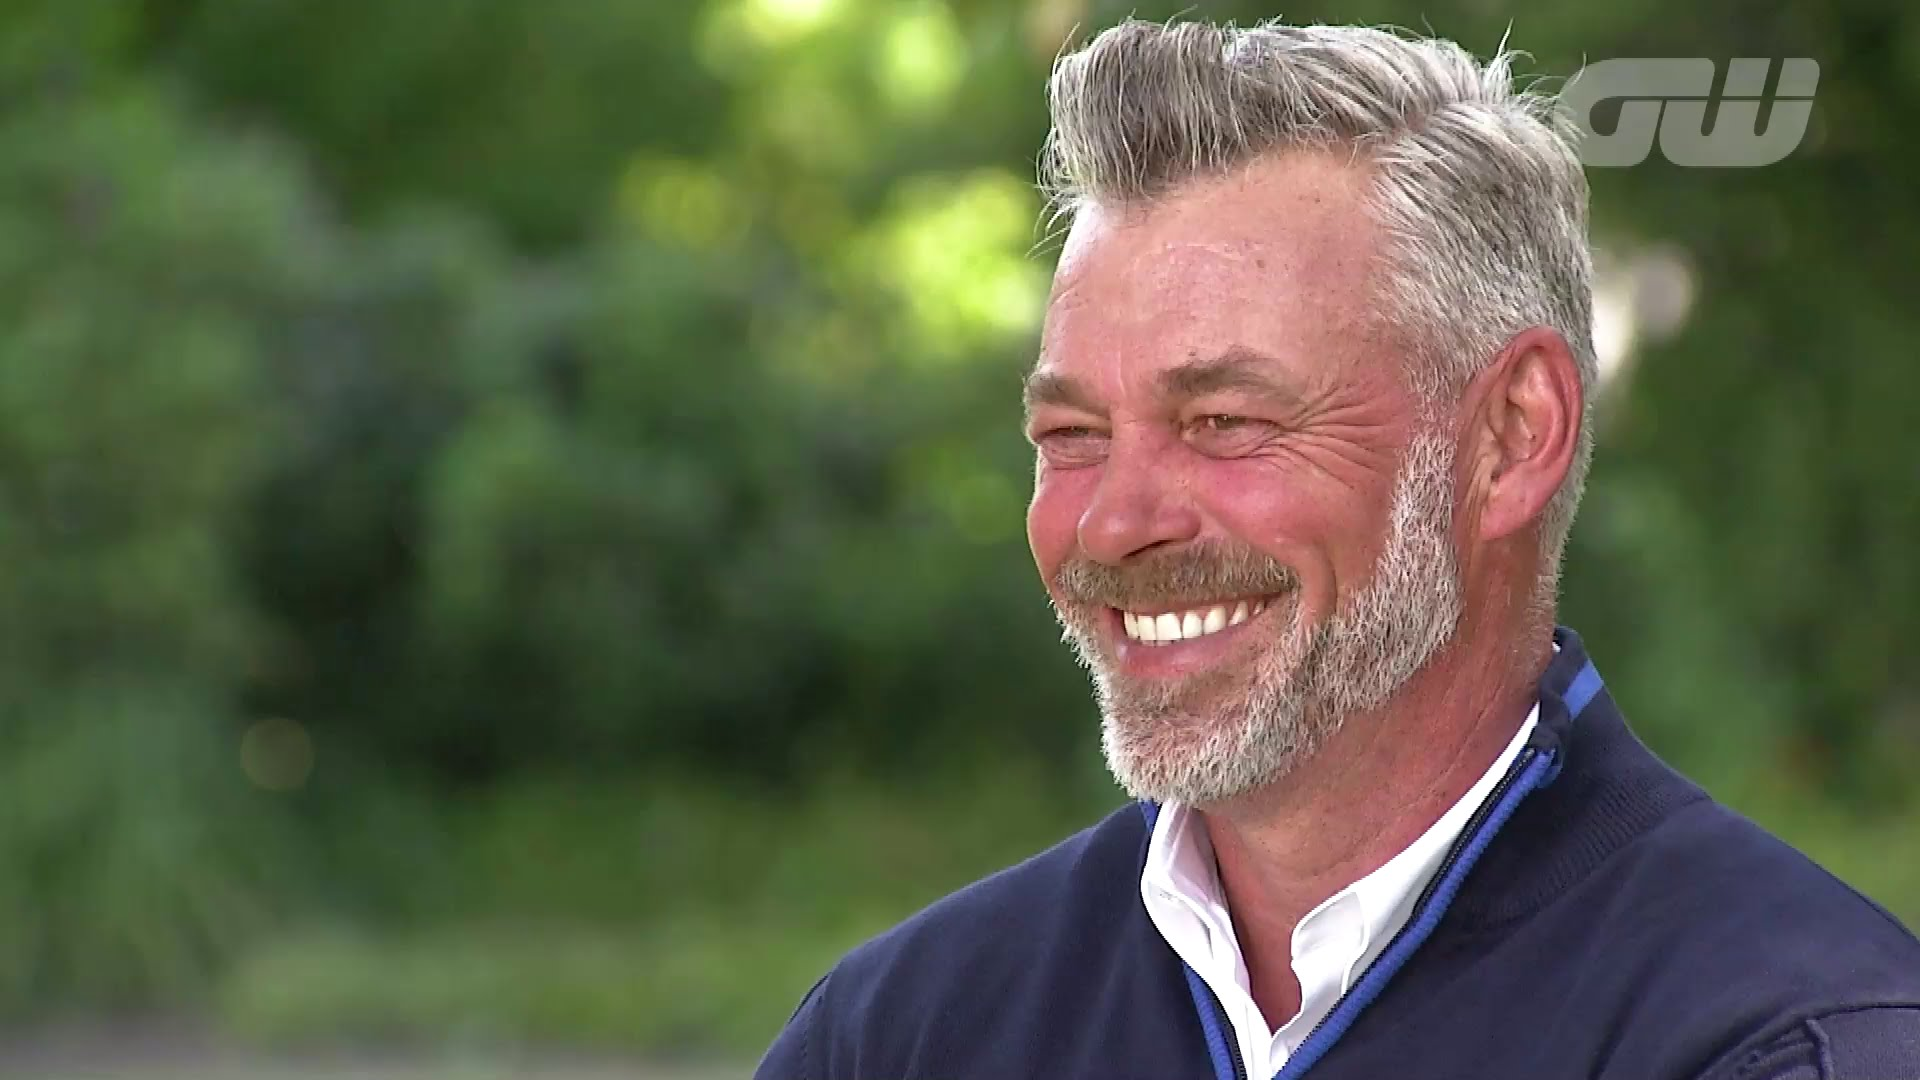 Darren Clarke Backgrounds, Compatible - PC, Mobile, Gadgets| 1920x1080 px